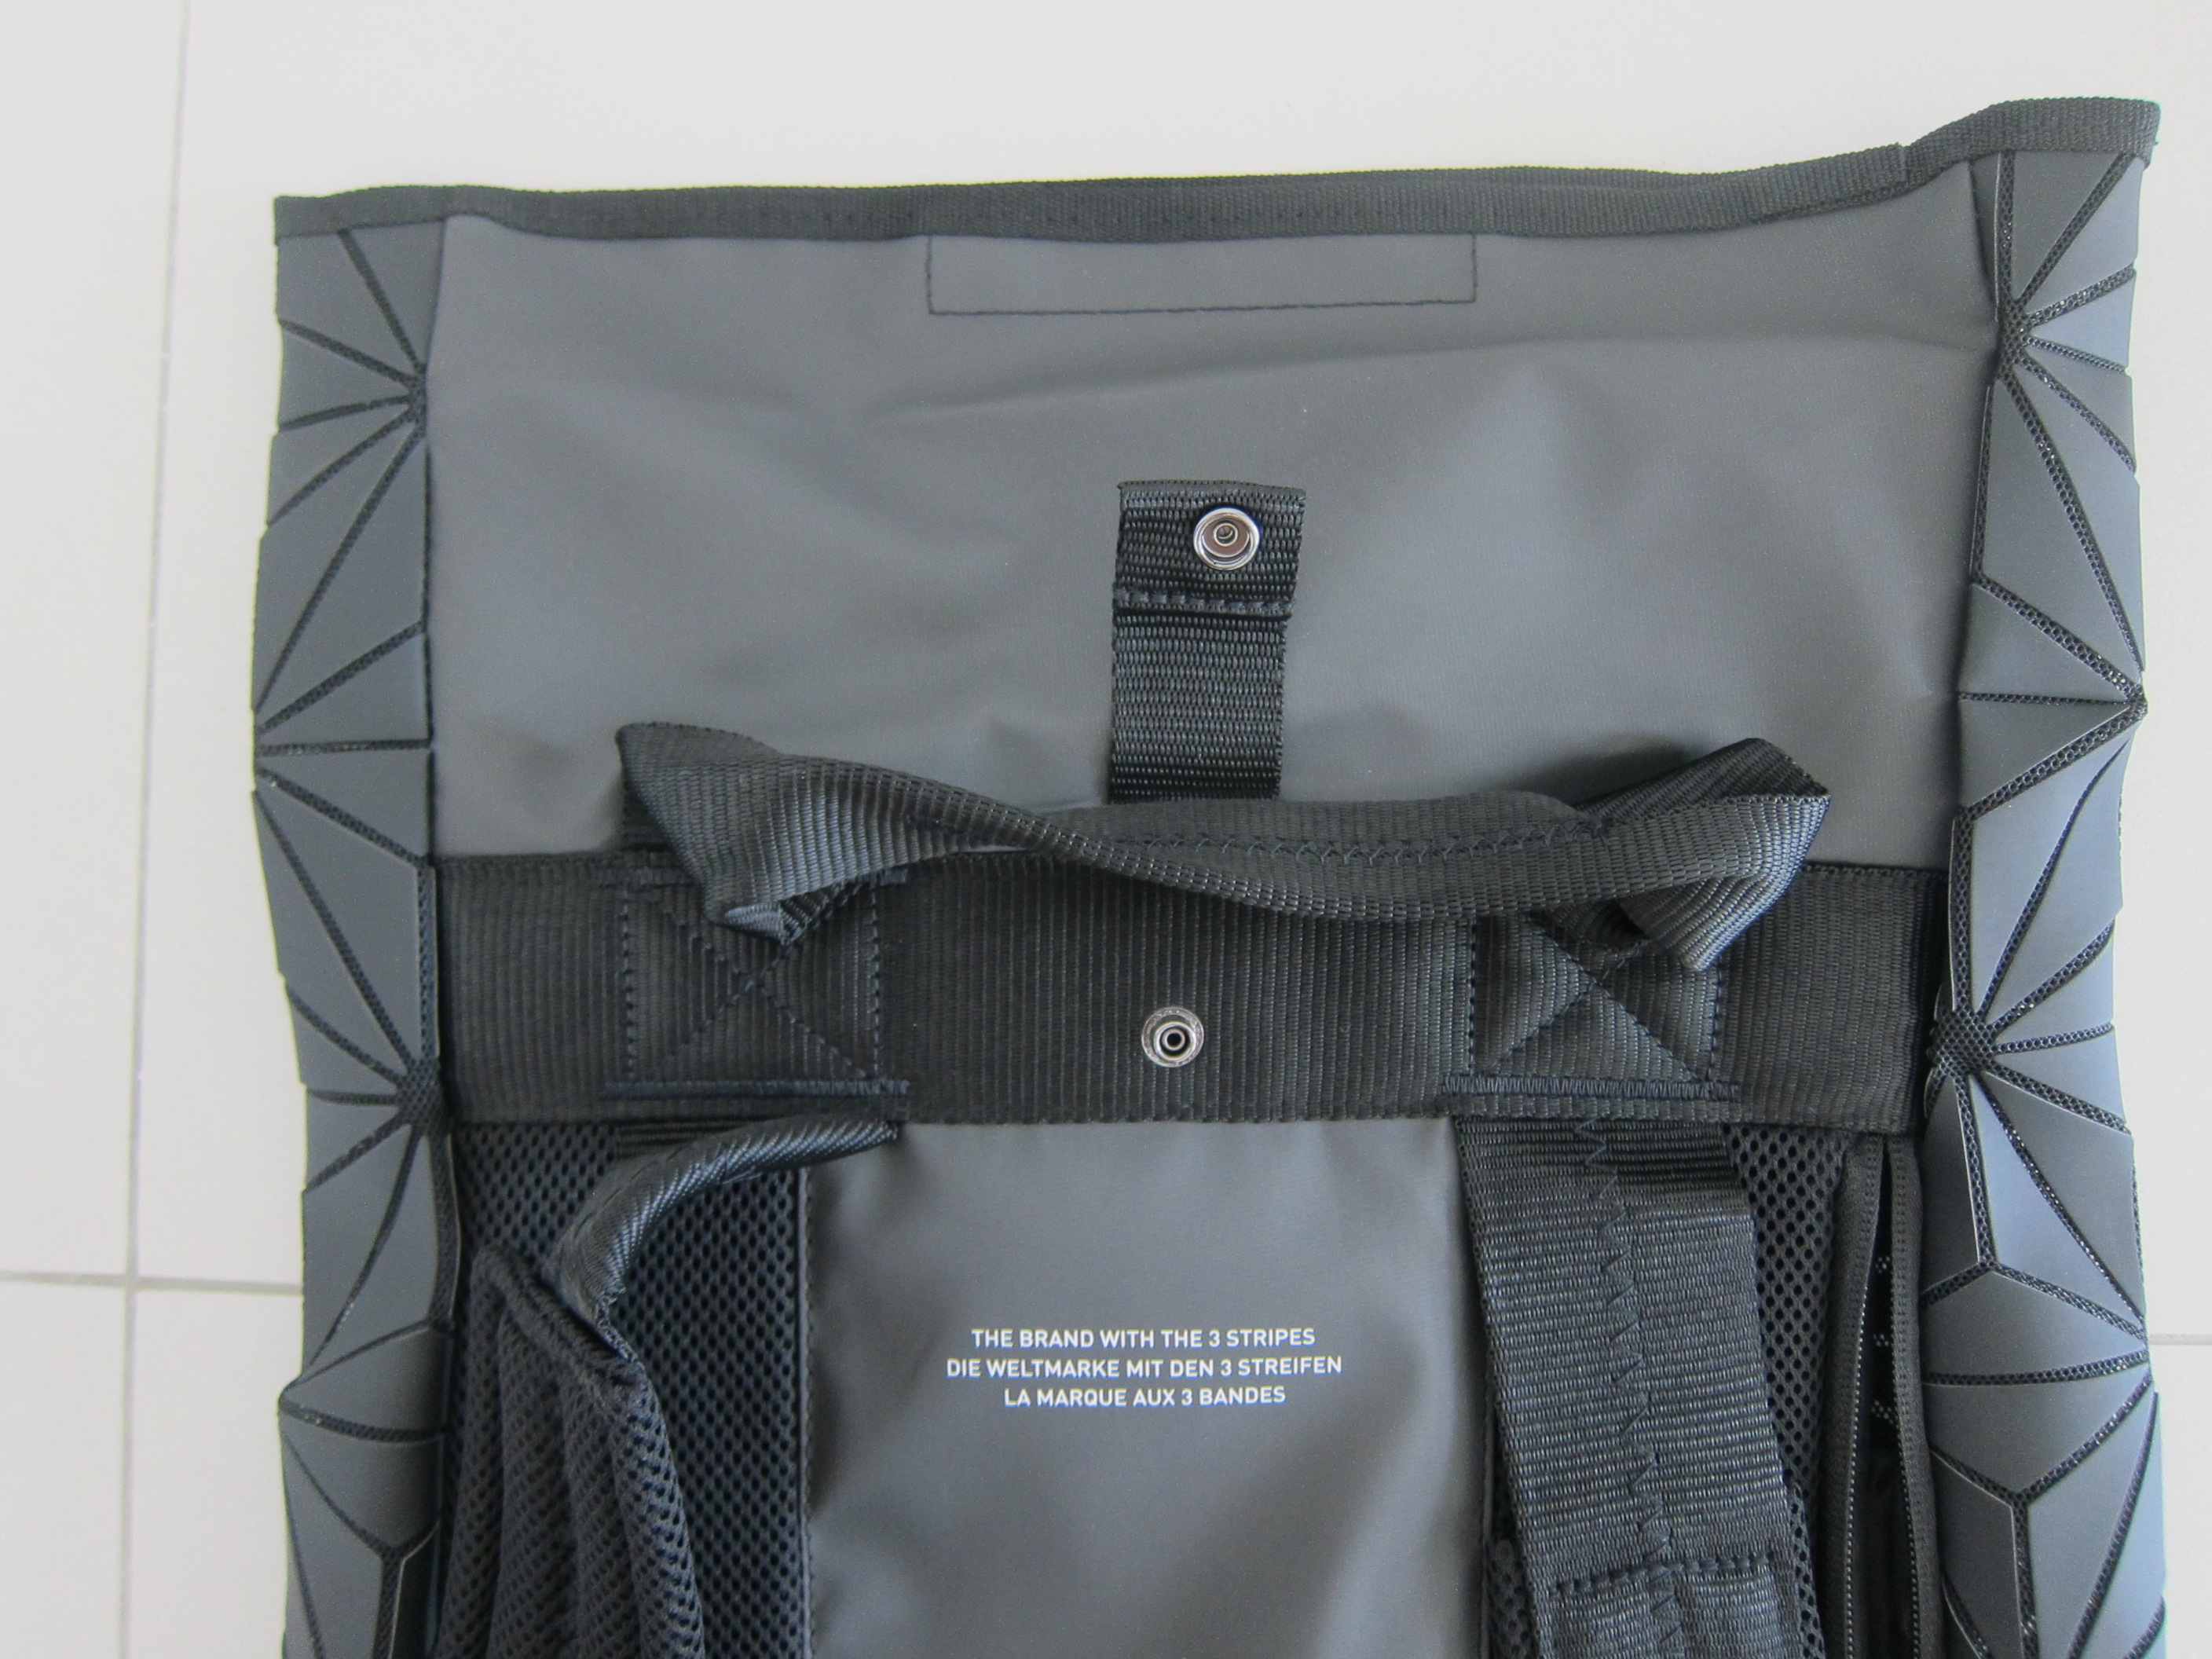 Adidas Issey Miyake 3D Roll Top Backpack « Blog  a940d15fbc8eb